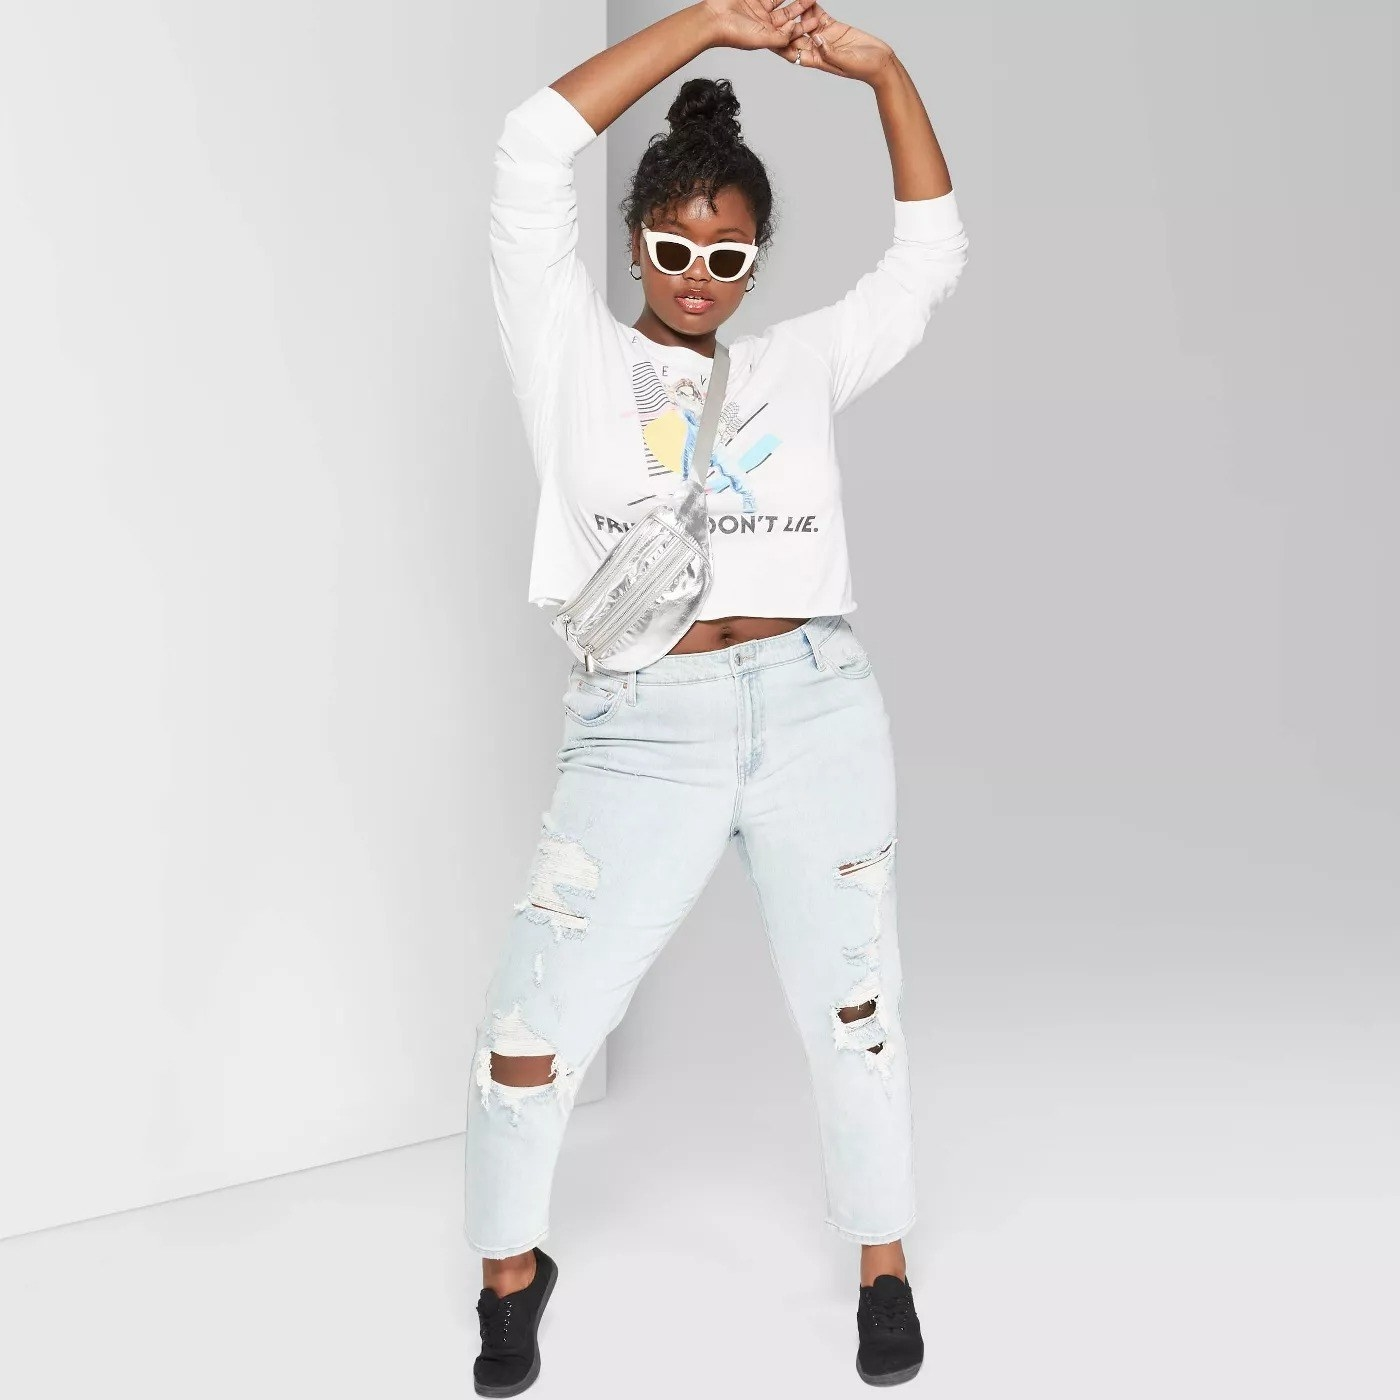 Model wearing loose fitting jeans with large holes, stops at the knee